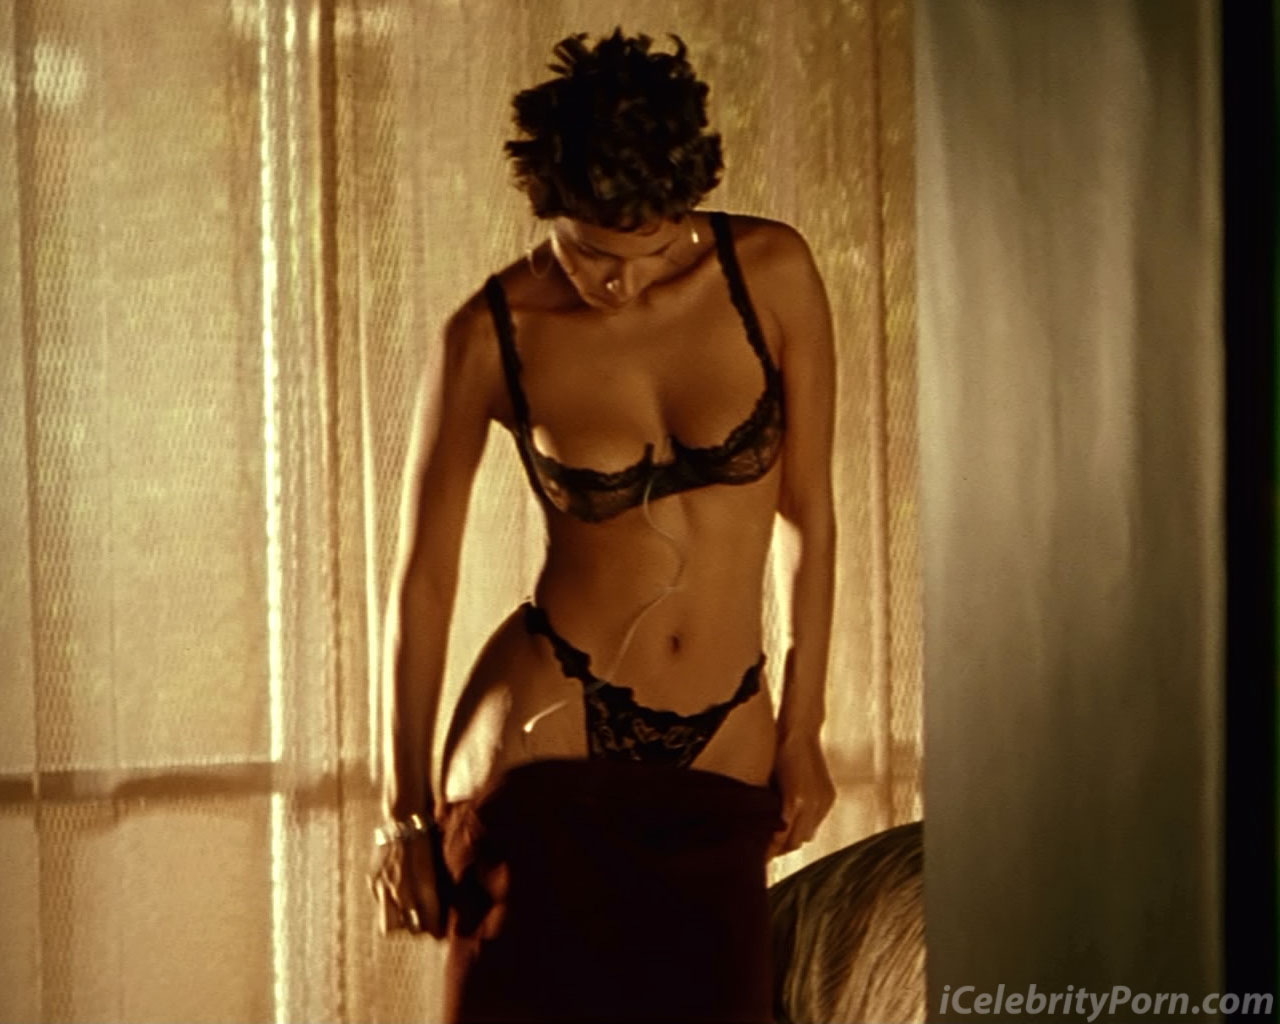 Halle Berry Xxx Desnuda Fotos Porno Sex Tape-5047